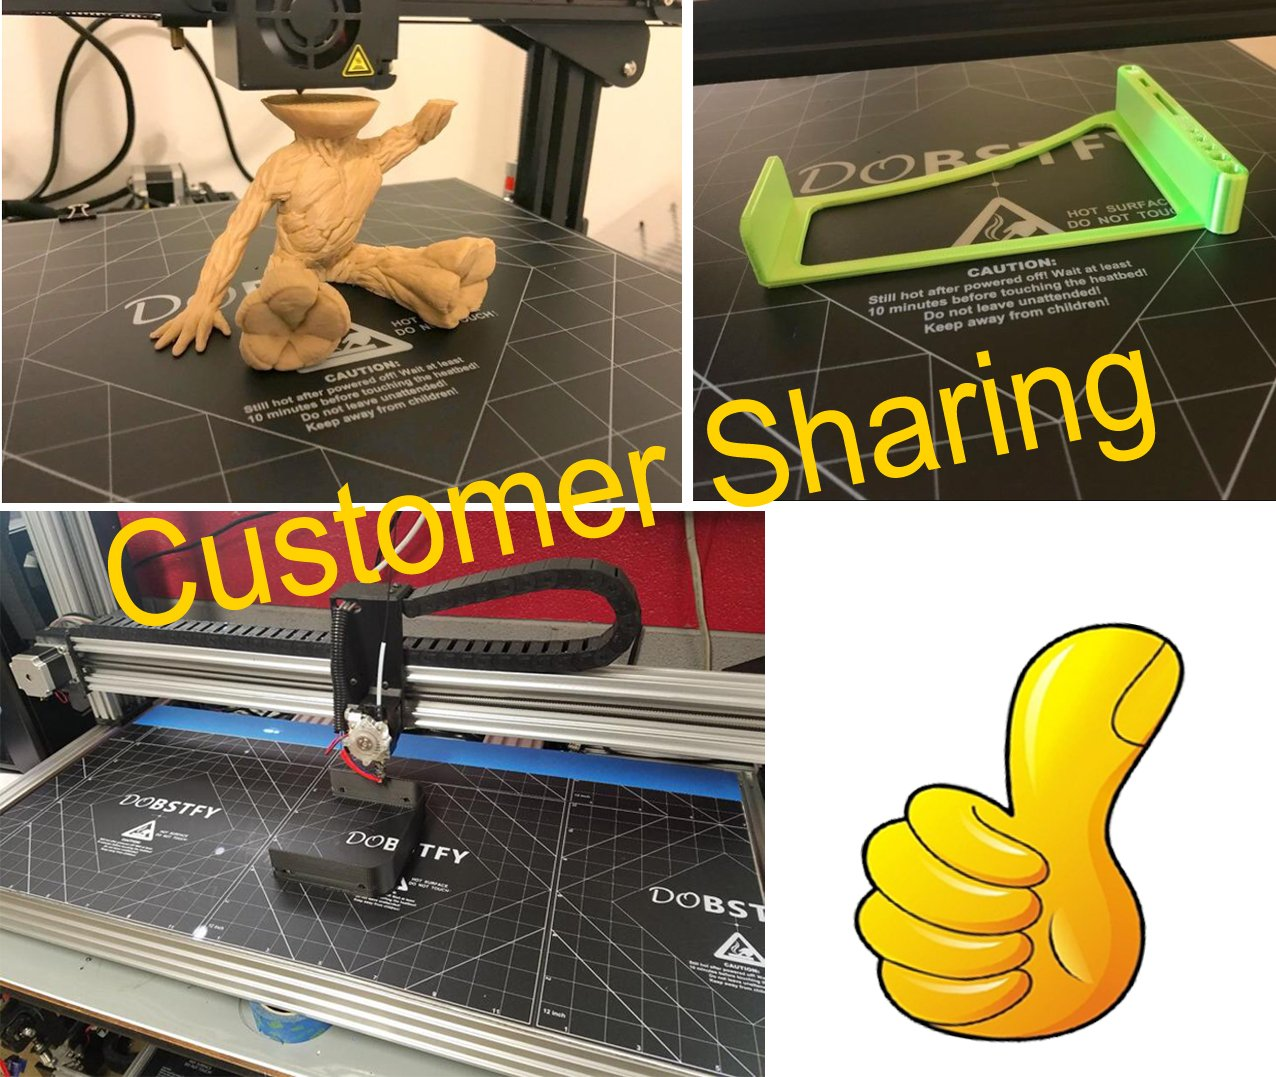 Pack of 4 - More 3D Print Platform of 8x8 // 235mm x 235mm // 16x16 for Choosing! 12x12 3D Printer Heat Bed Platform Sticker Sheet Square 3D Printing Build Surface